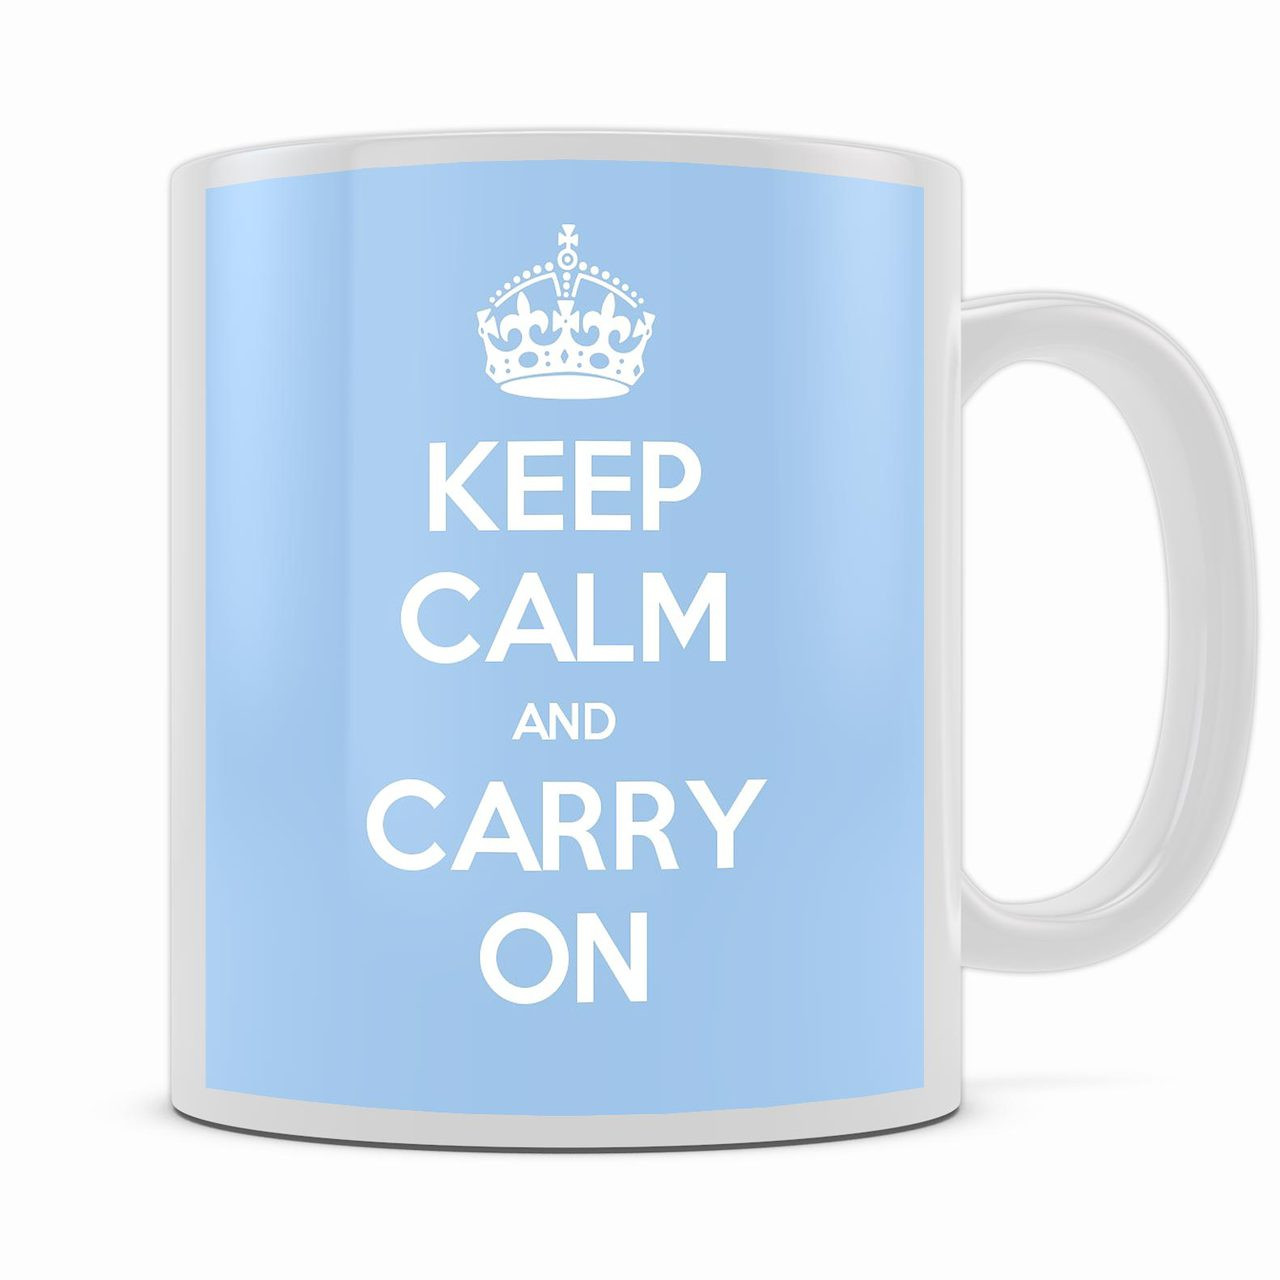 KEEP CALM AND CARRY ON LIGHT BLUE MUG